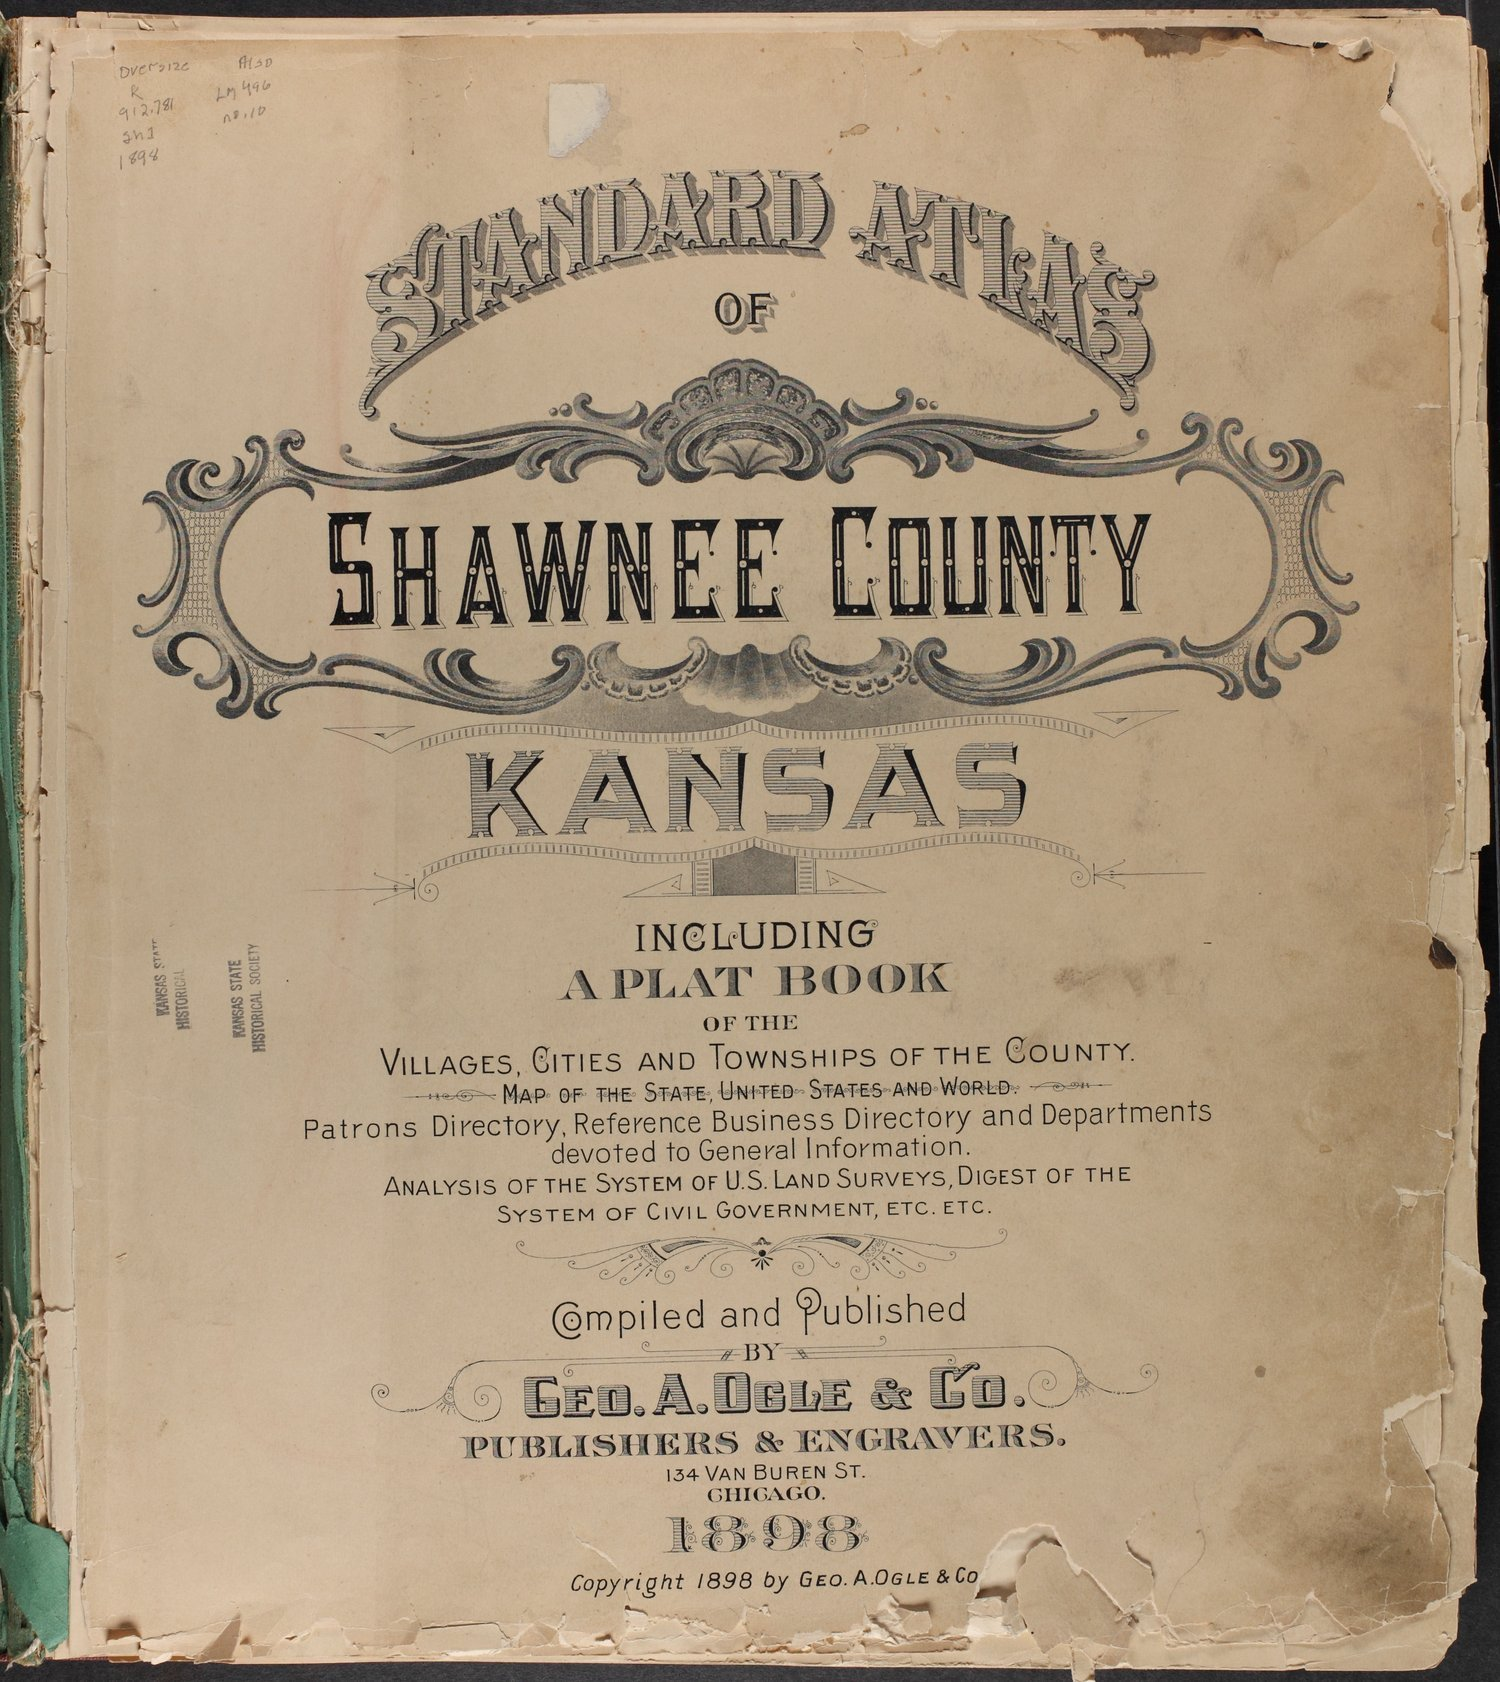 Standard atlas of Shawnee County, Kansas - Title Page